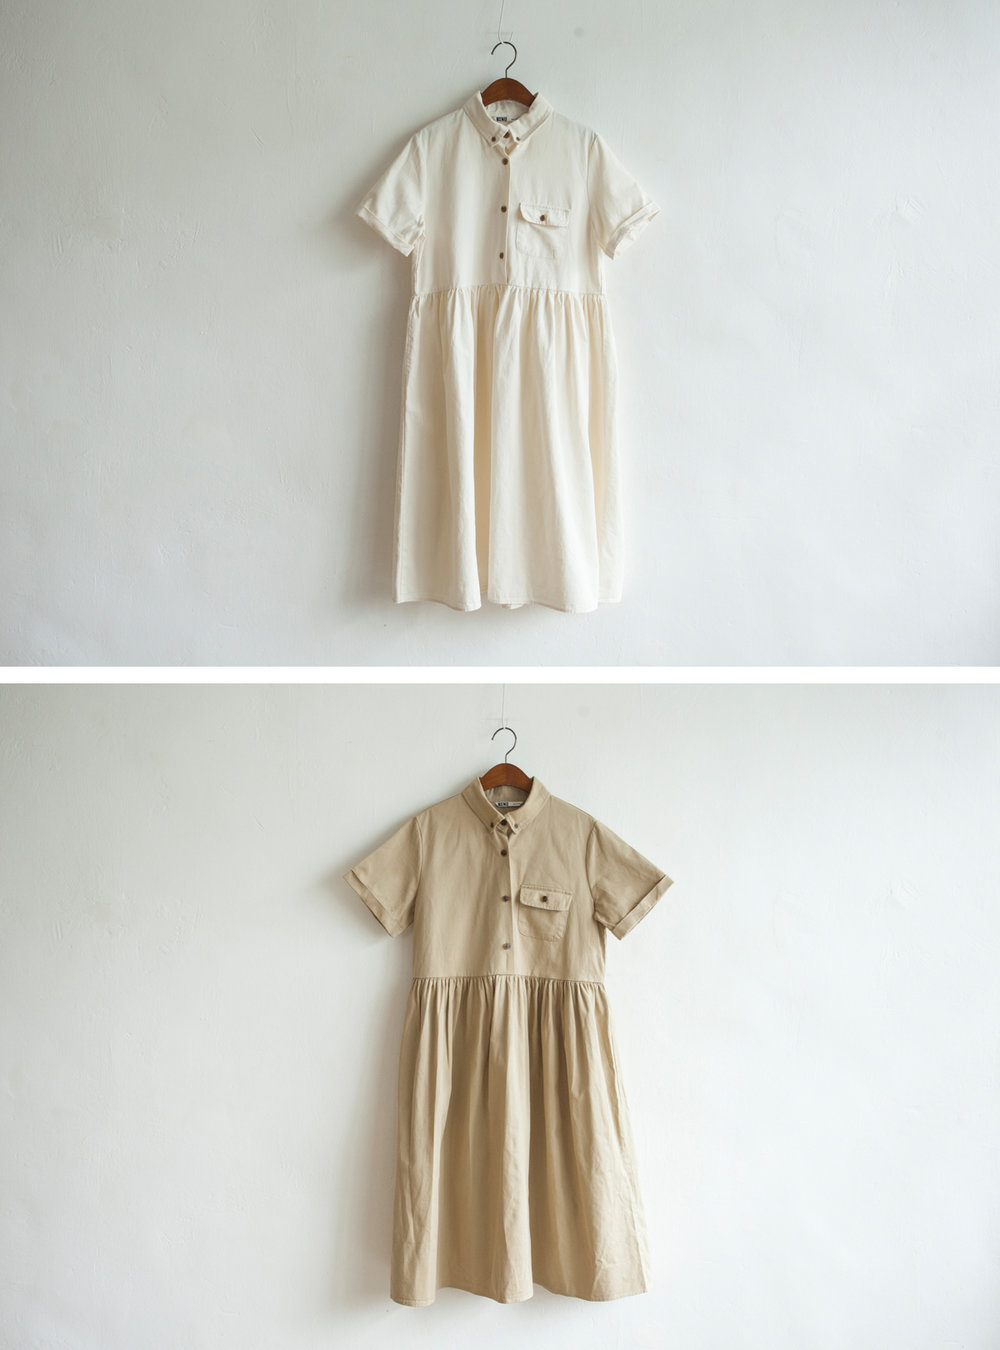 NBOA349 rochell canvas cotton pocket dress    early bird price: HK$368 / NT$1580    regular price: HK$428 / NT$1840    color: ivory / beige    made in korea     measurement (cm) shoulder 39 bust 97 length 104 waist 88 hip 128 sleeves 20